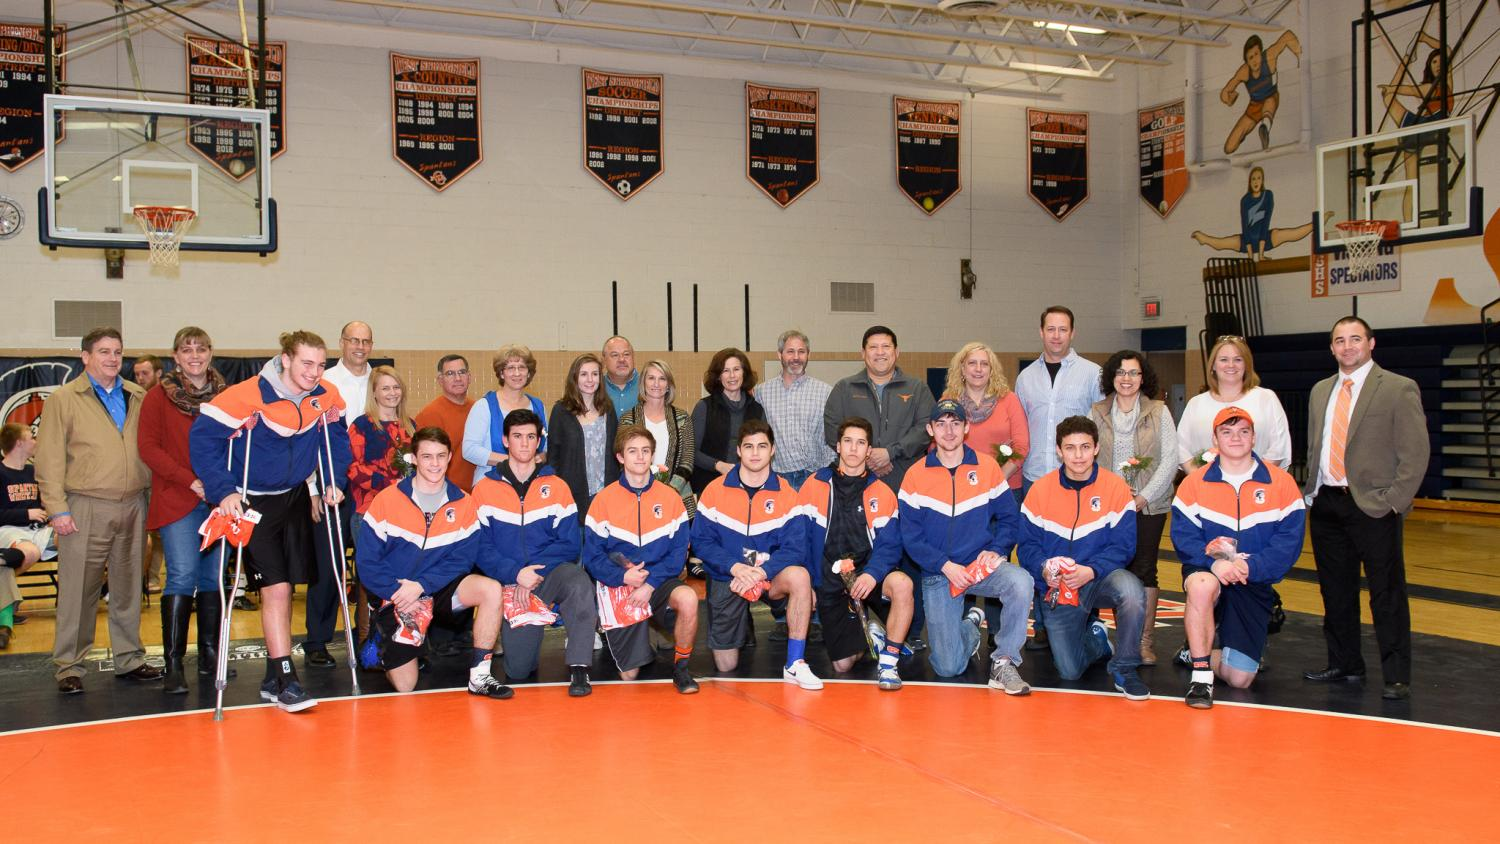 The senior class of the wrestling team before their final home competition.  The seniors led the wrestling team to a 6-1 conference record and two of the three Spartan wrestlers who went to the state tournament were seniors.